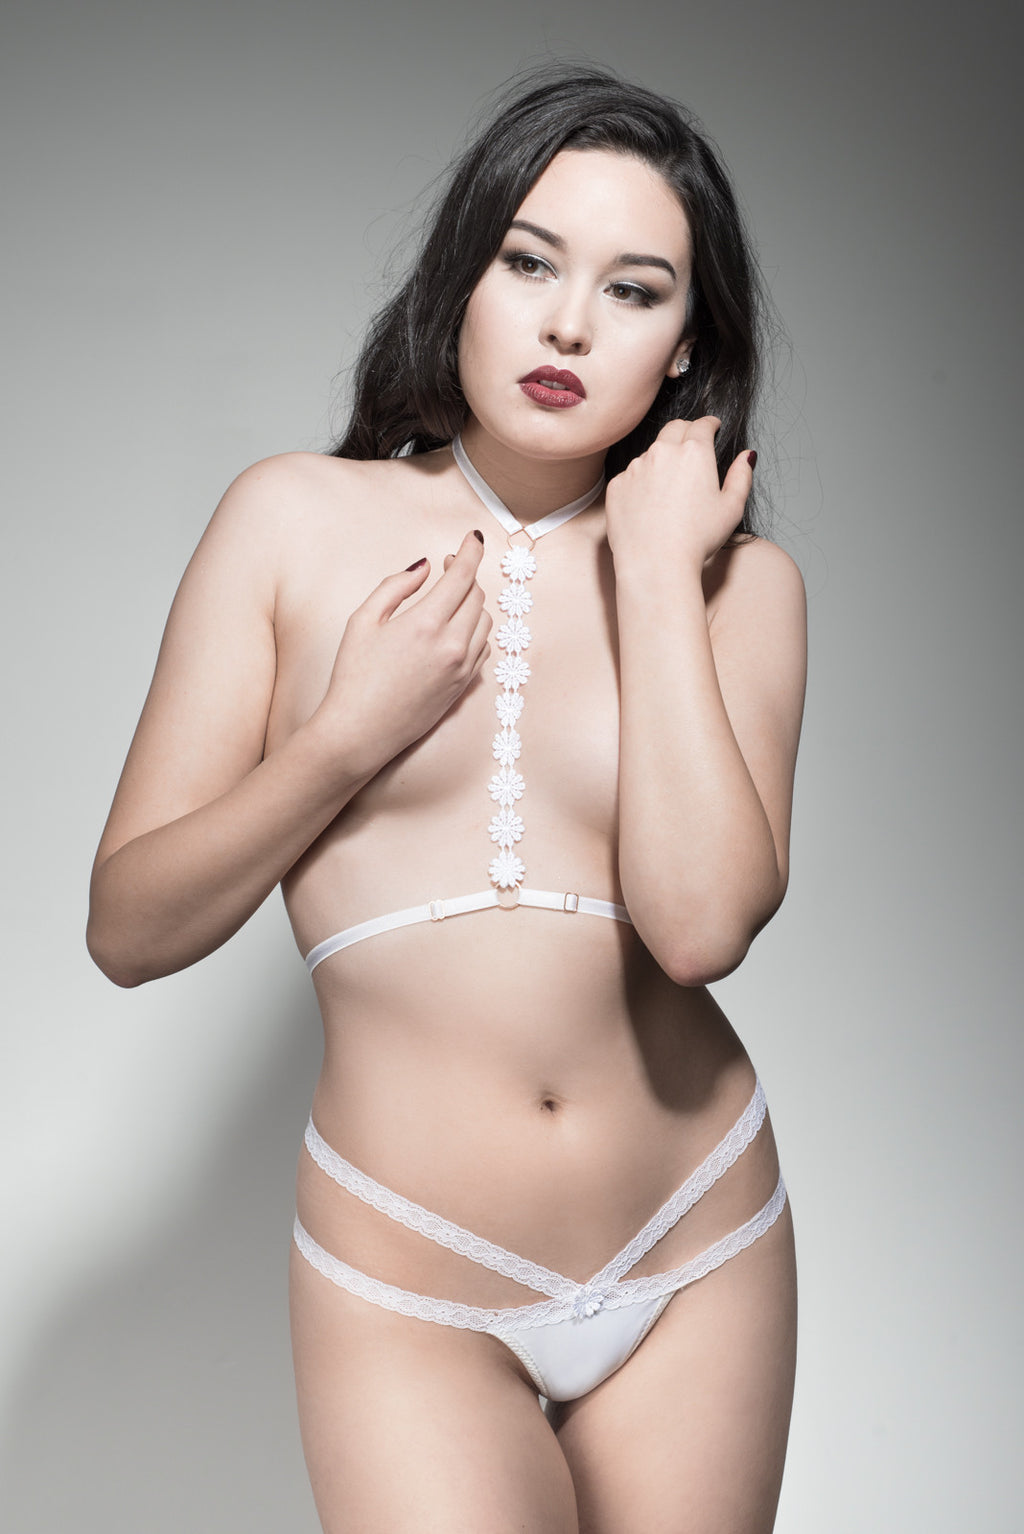 Moonflower fashion harness